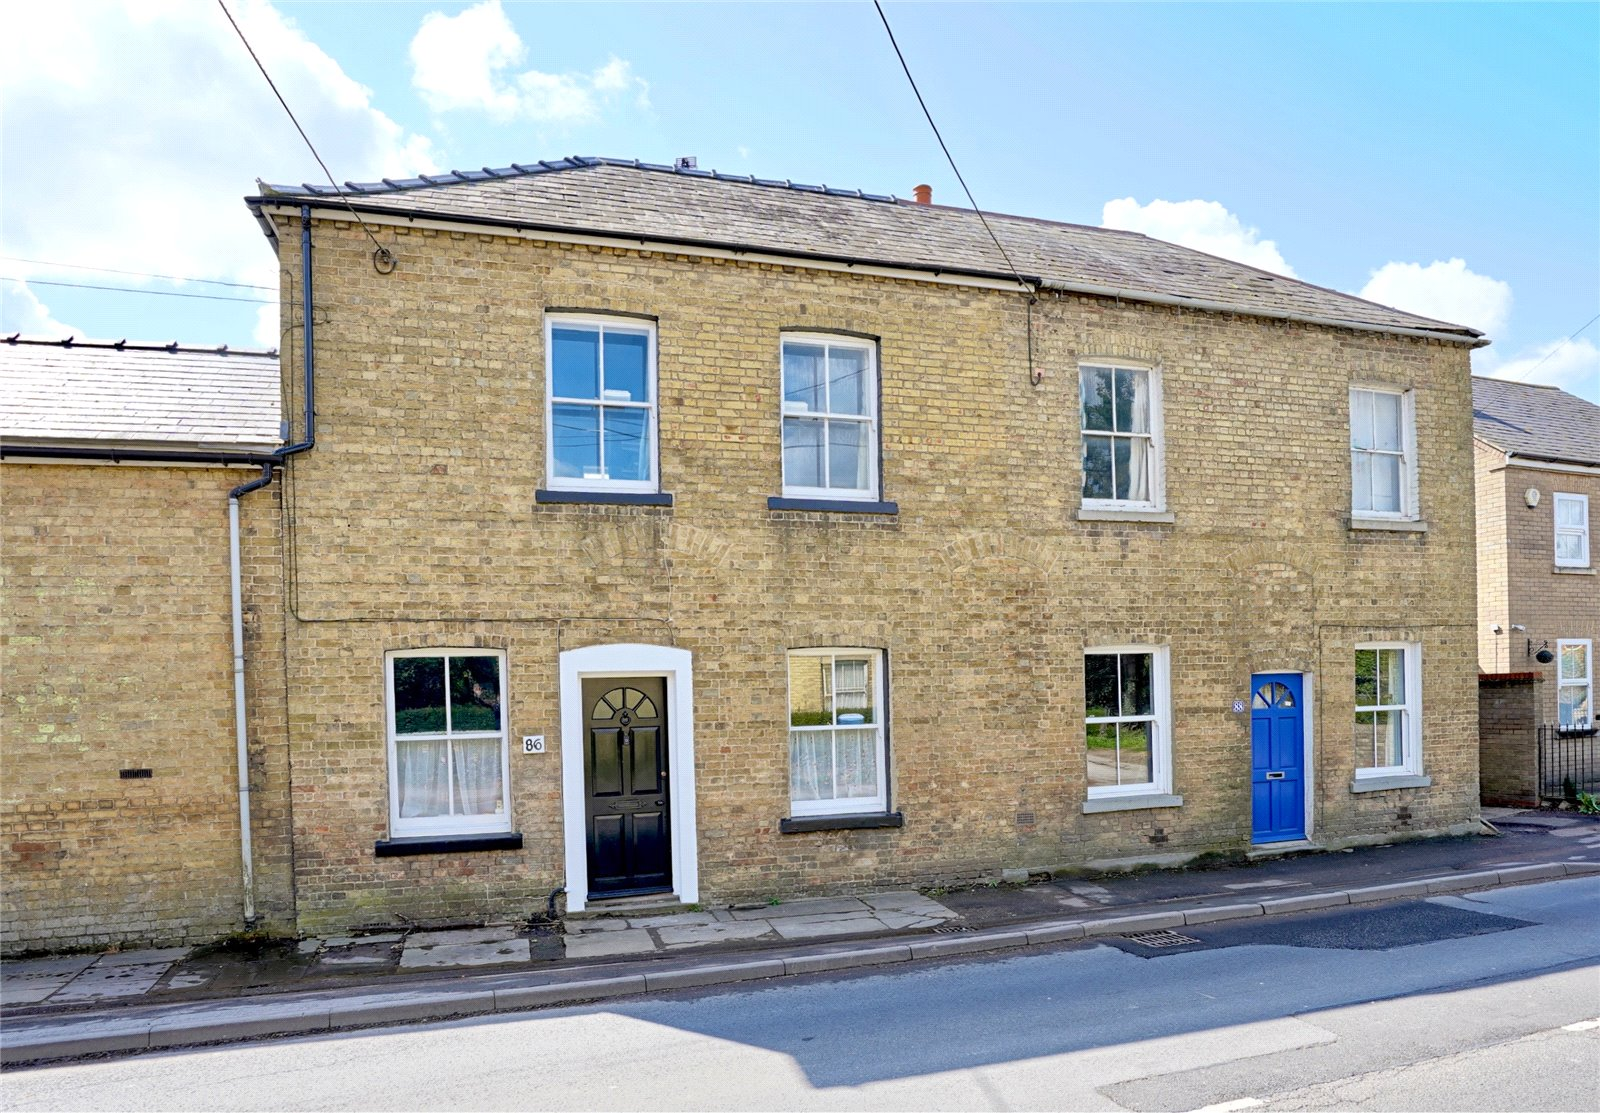 3 bed house for sale in Earith, PE28 3PN  - Property Image 1